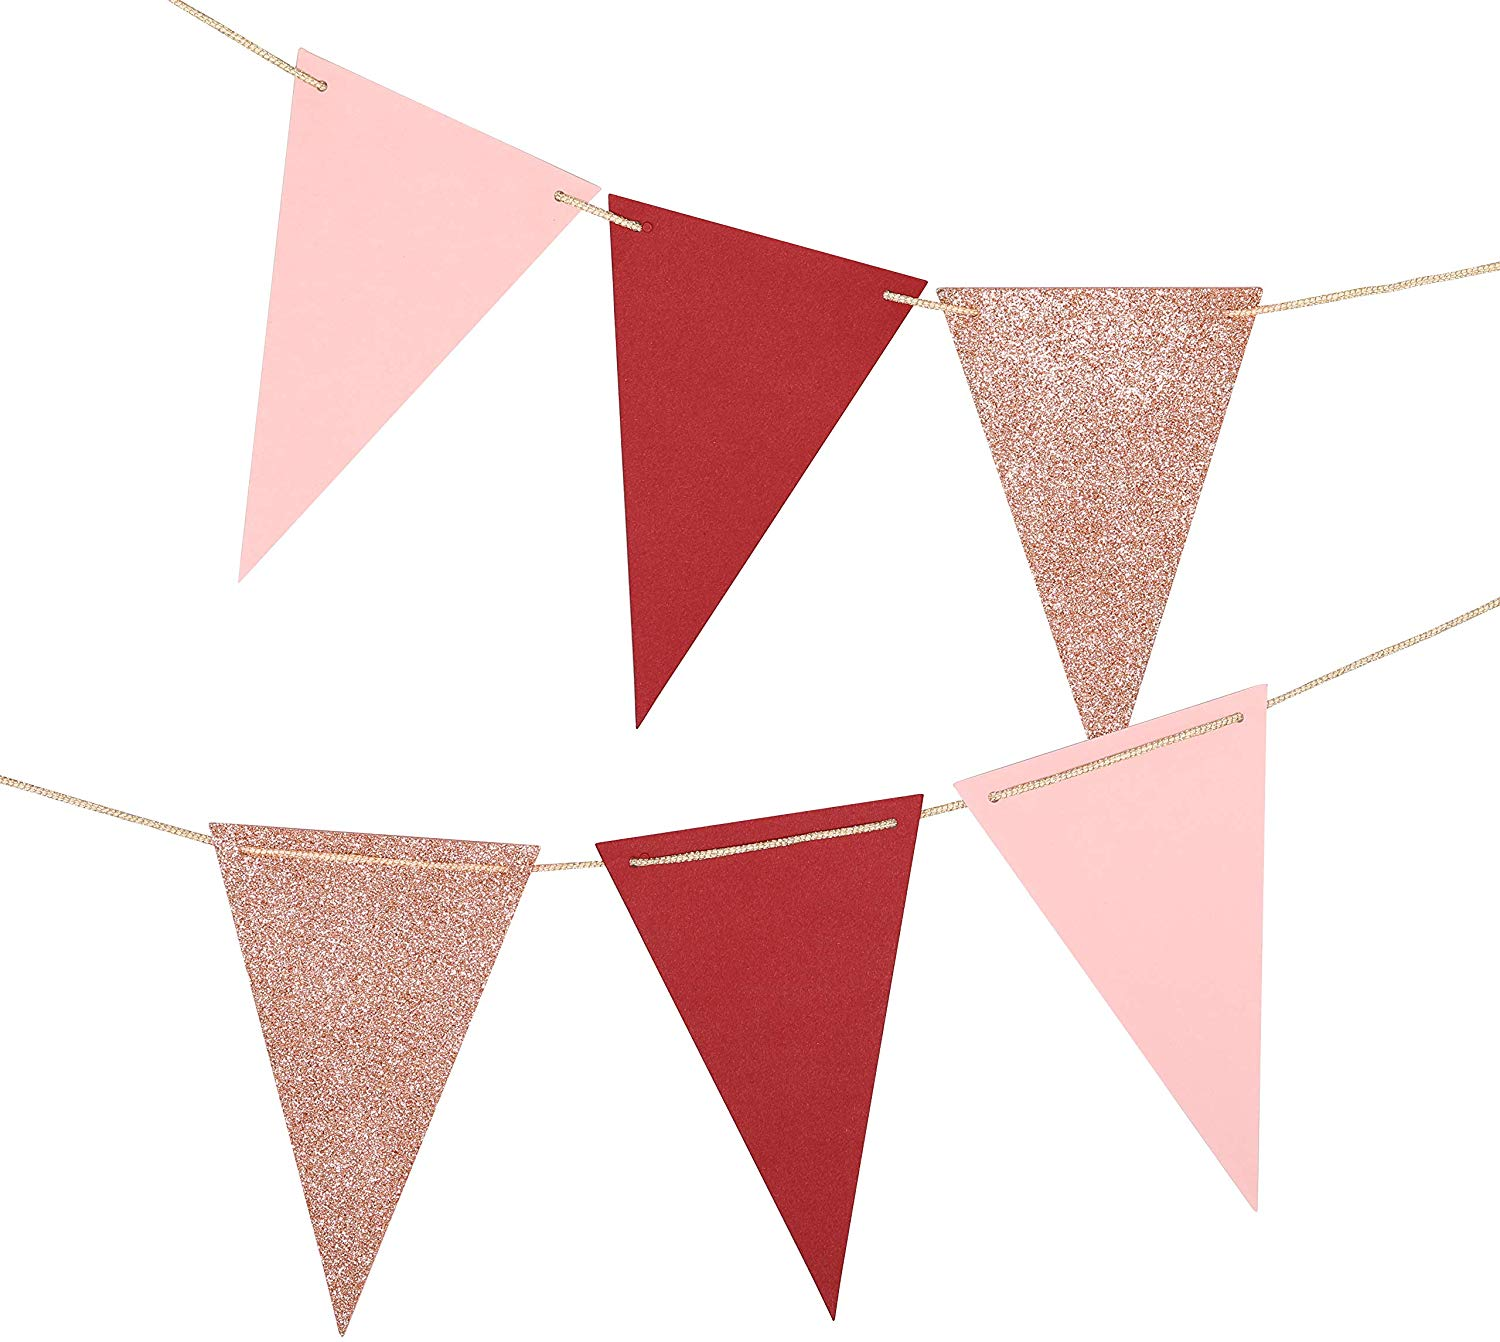 Paper Pennant Decorations Triangle Flags Bunting Garland For